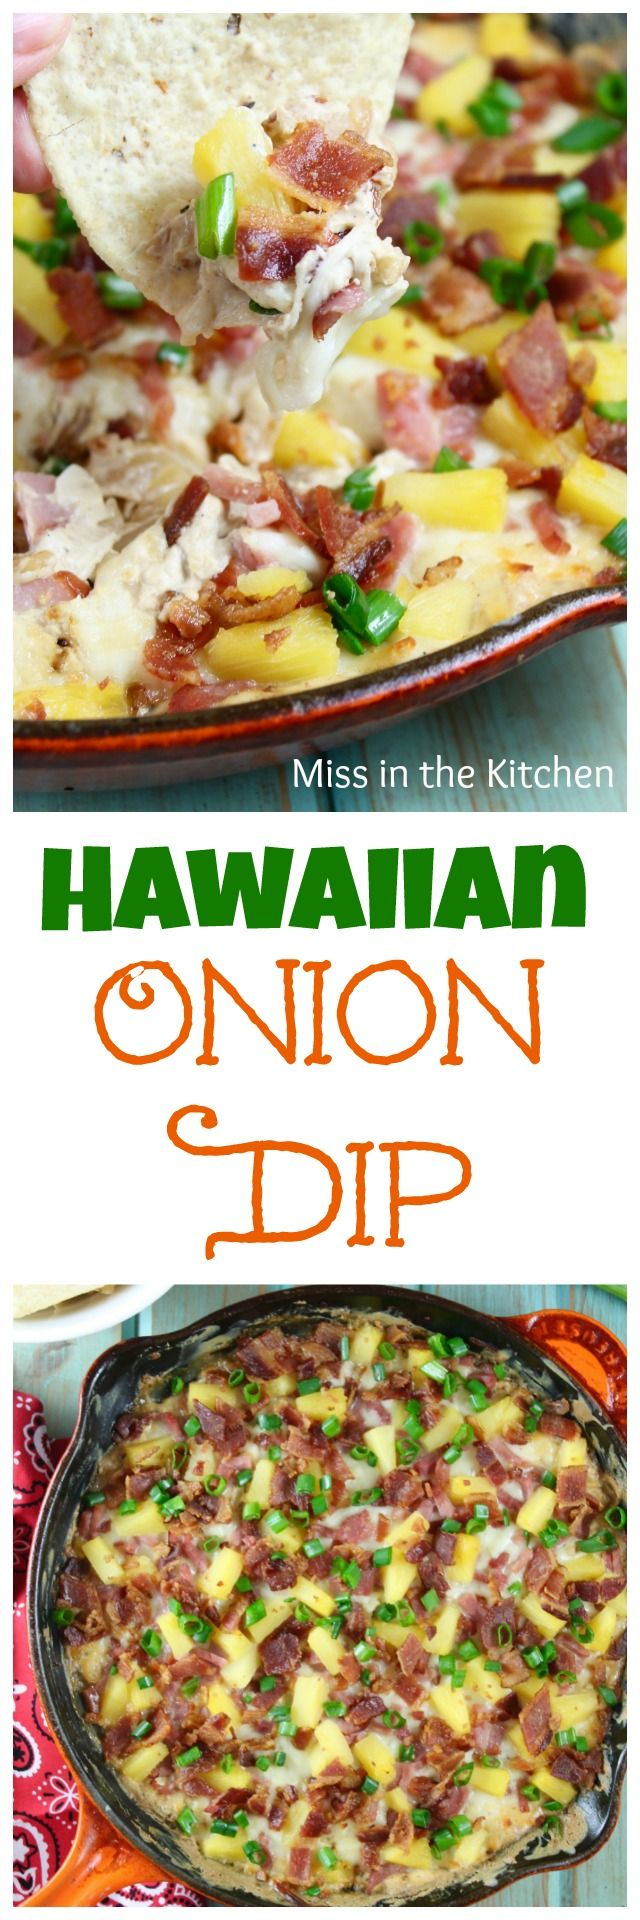 Hawaiian Onion Dip is a kicked  up version of your favorite onion dip! Recipe from MissintheKitchen.com